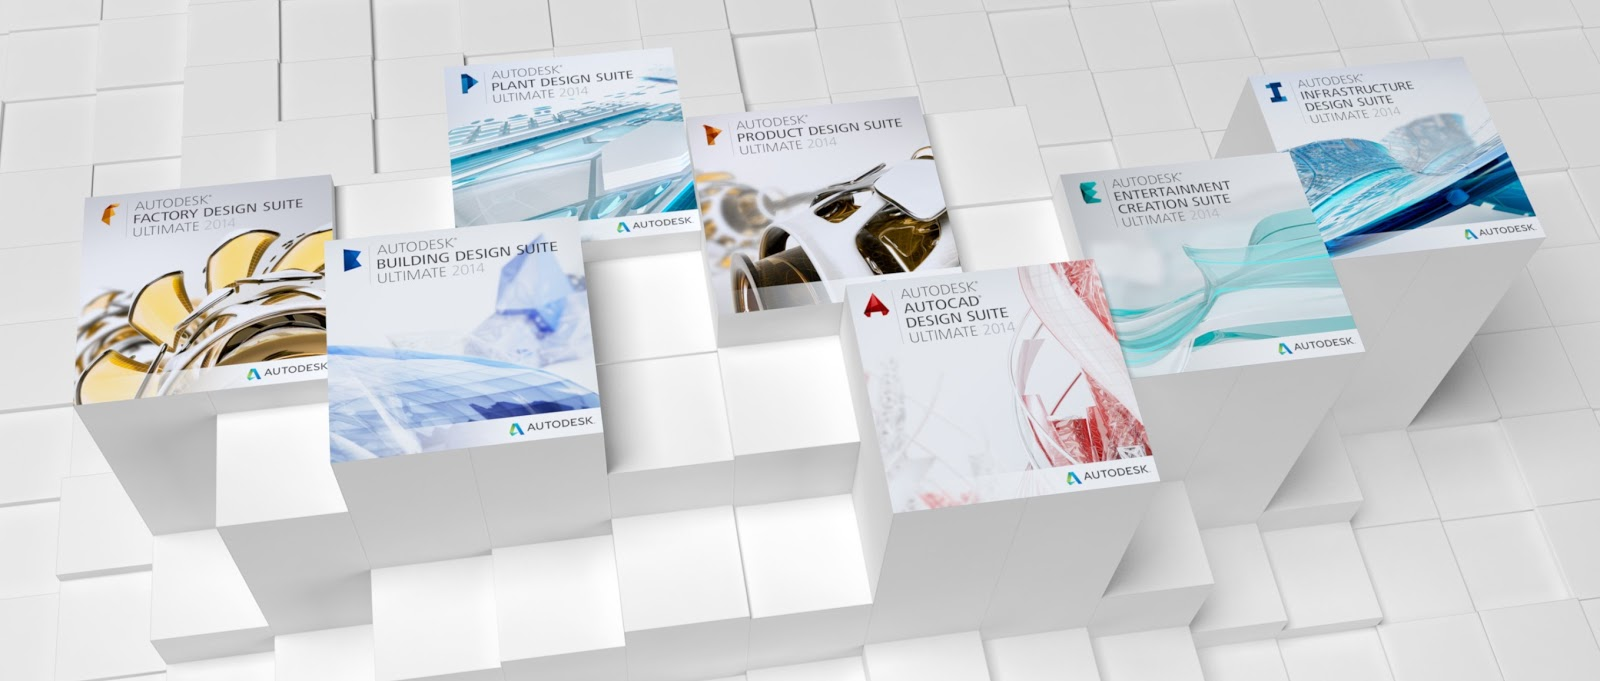 Autodesk Product Design Suite 2014